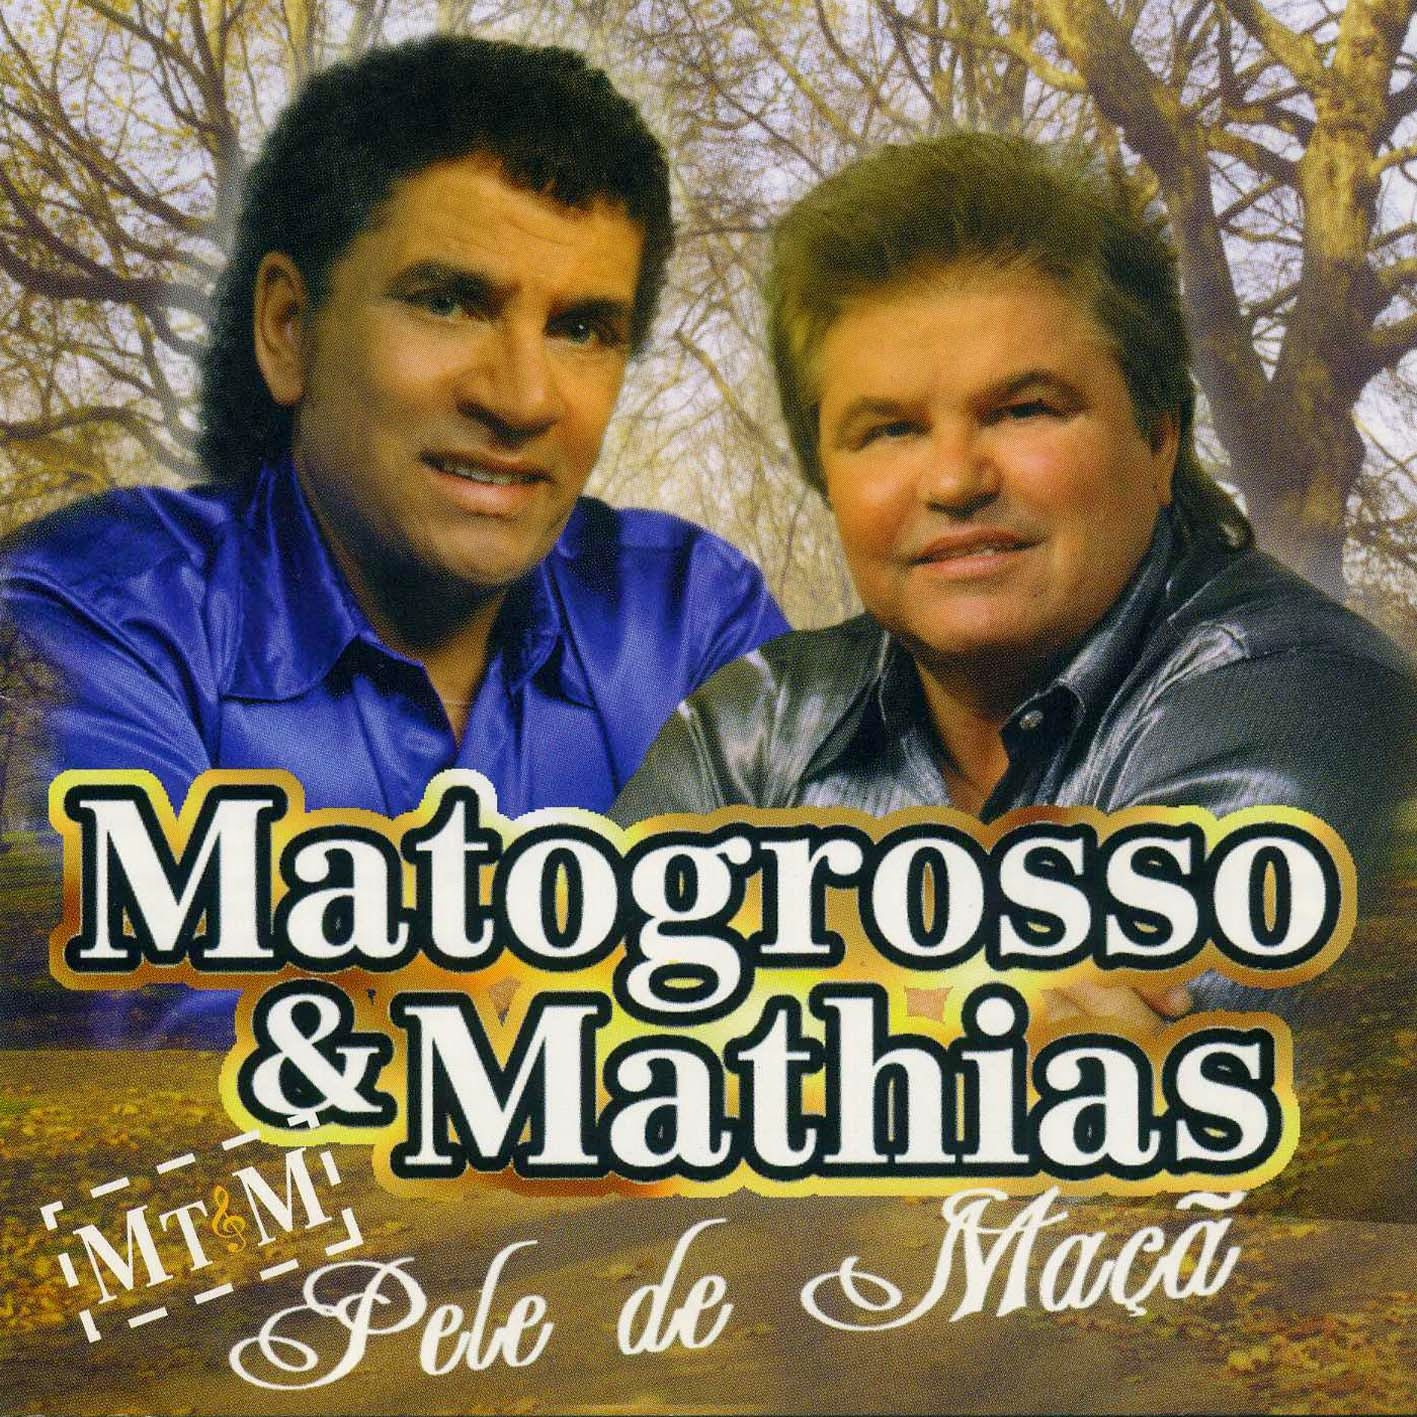 Resultado de imagem para DISCOGRAFIA MATOGROSSO E MATHIAS VOL 1